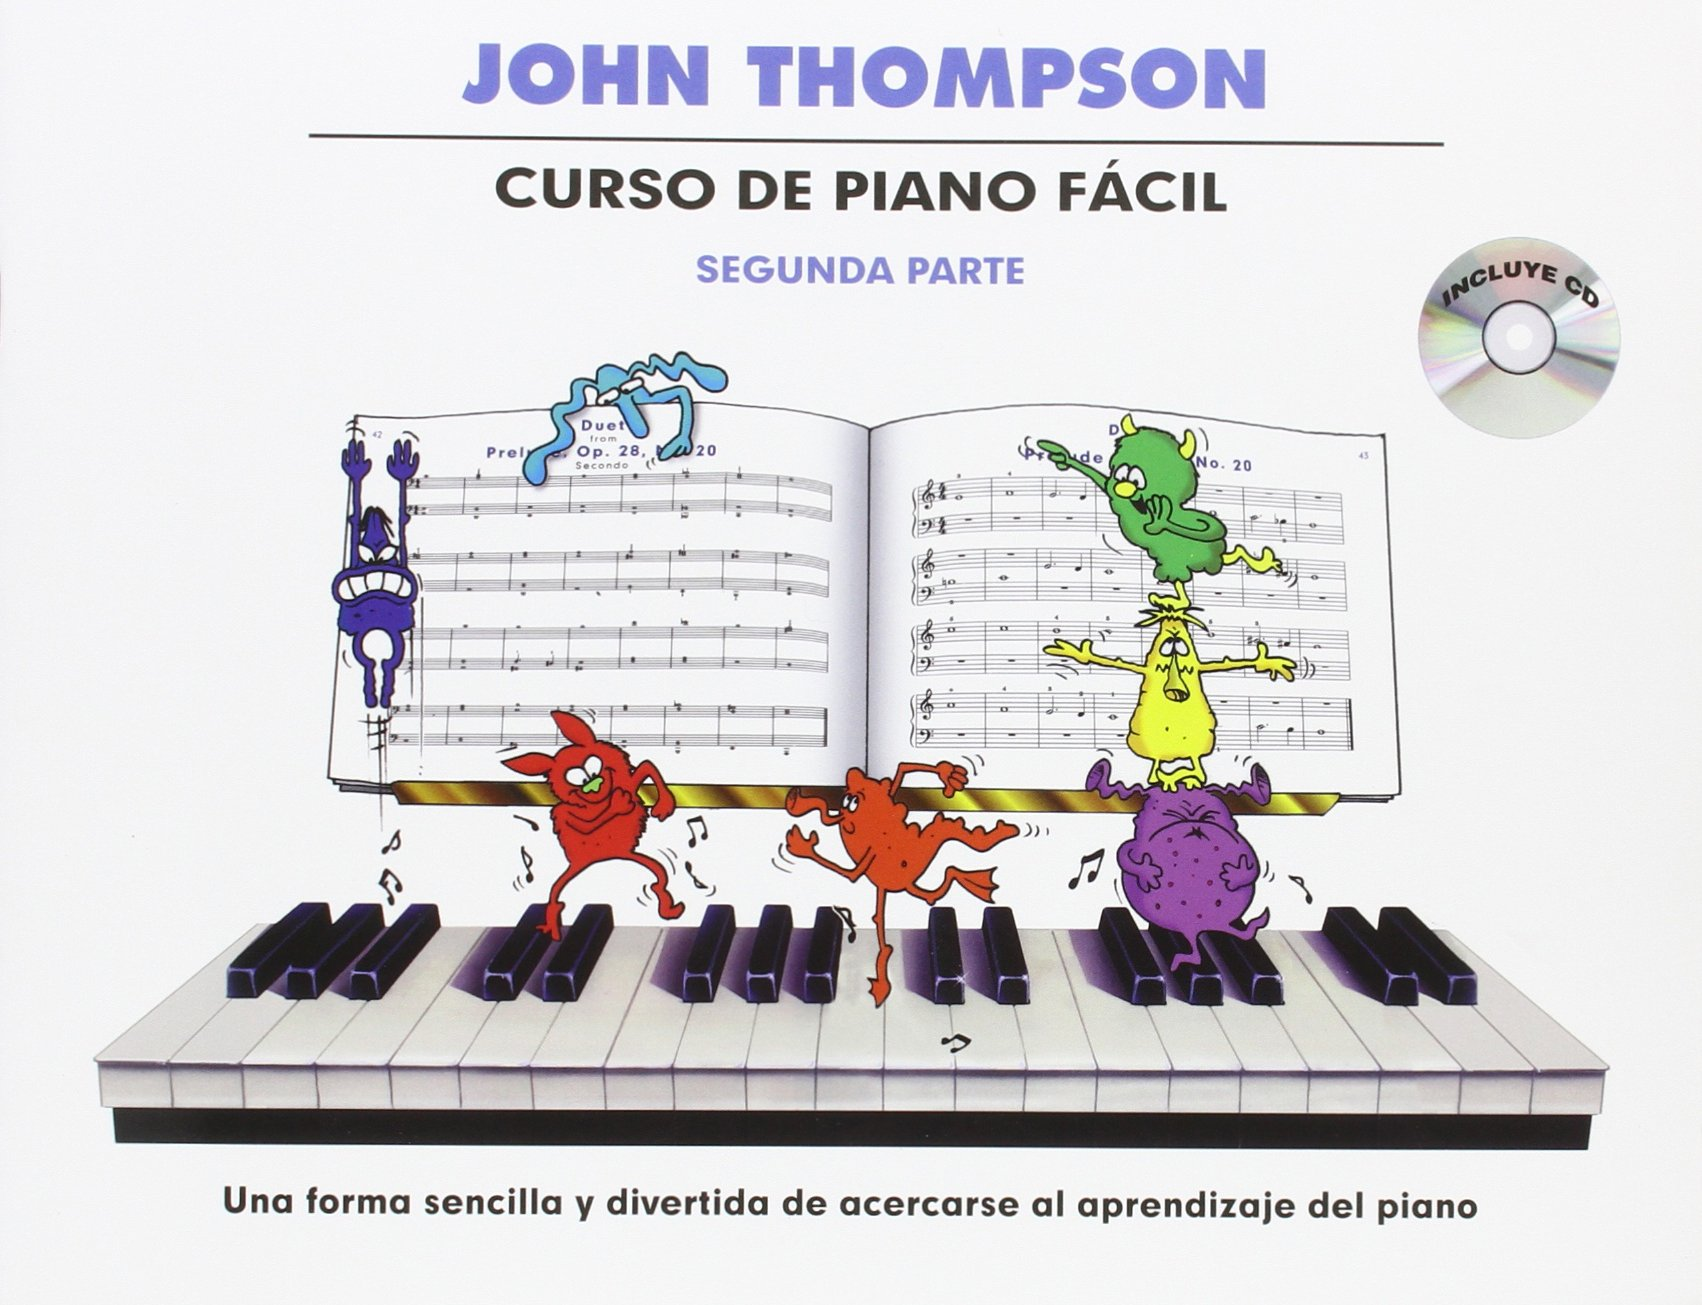 CURSO DE PIANO FACIL VOL 2 + CD: Amazon.es: THOMPSON,JOHN: Libros